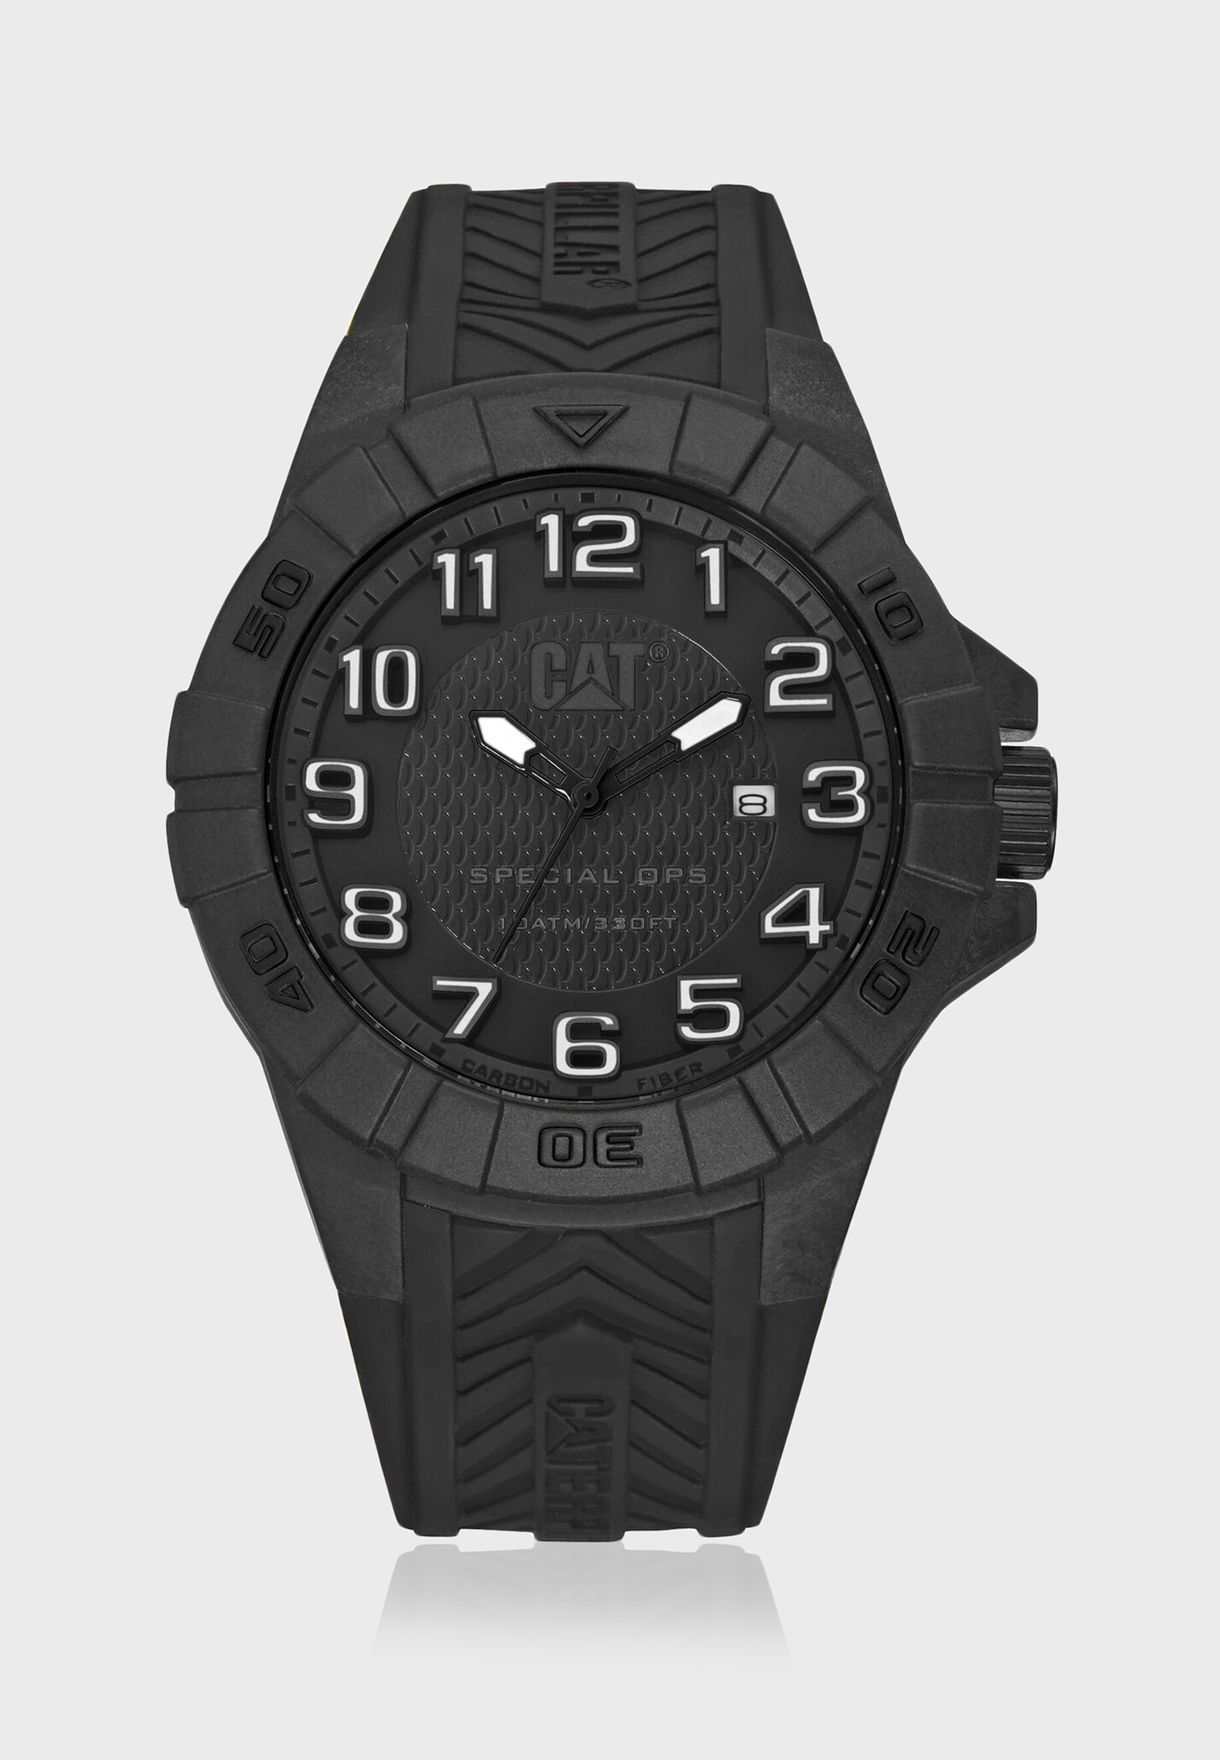 Special Military Analog Watch